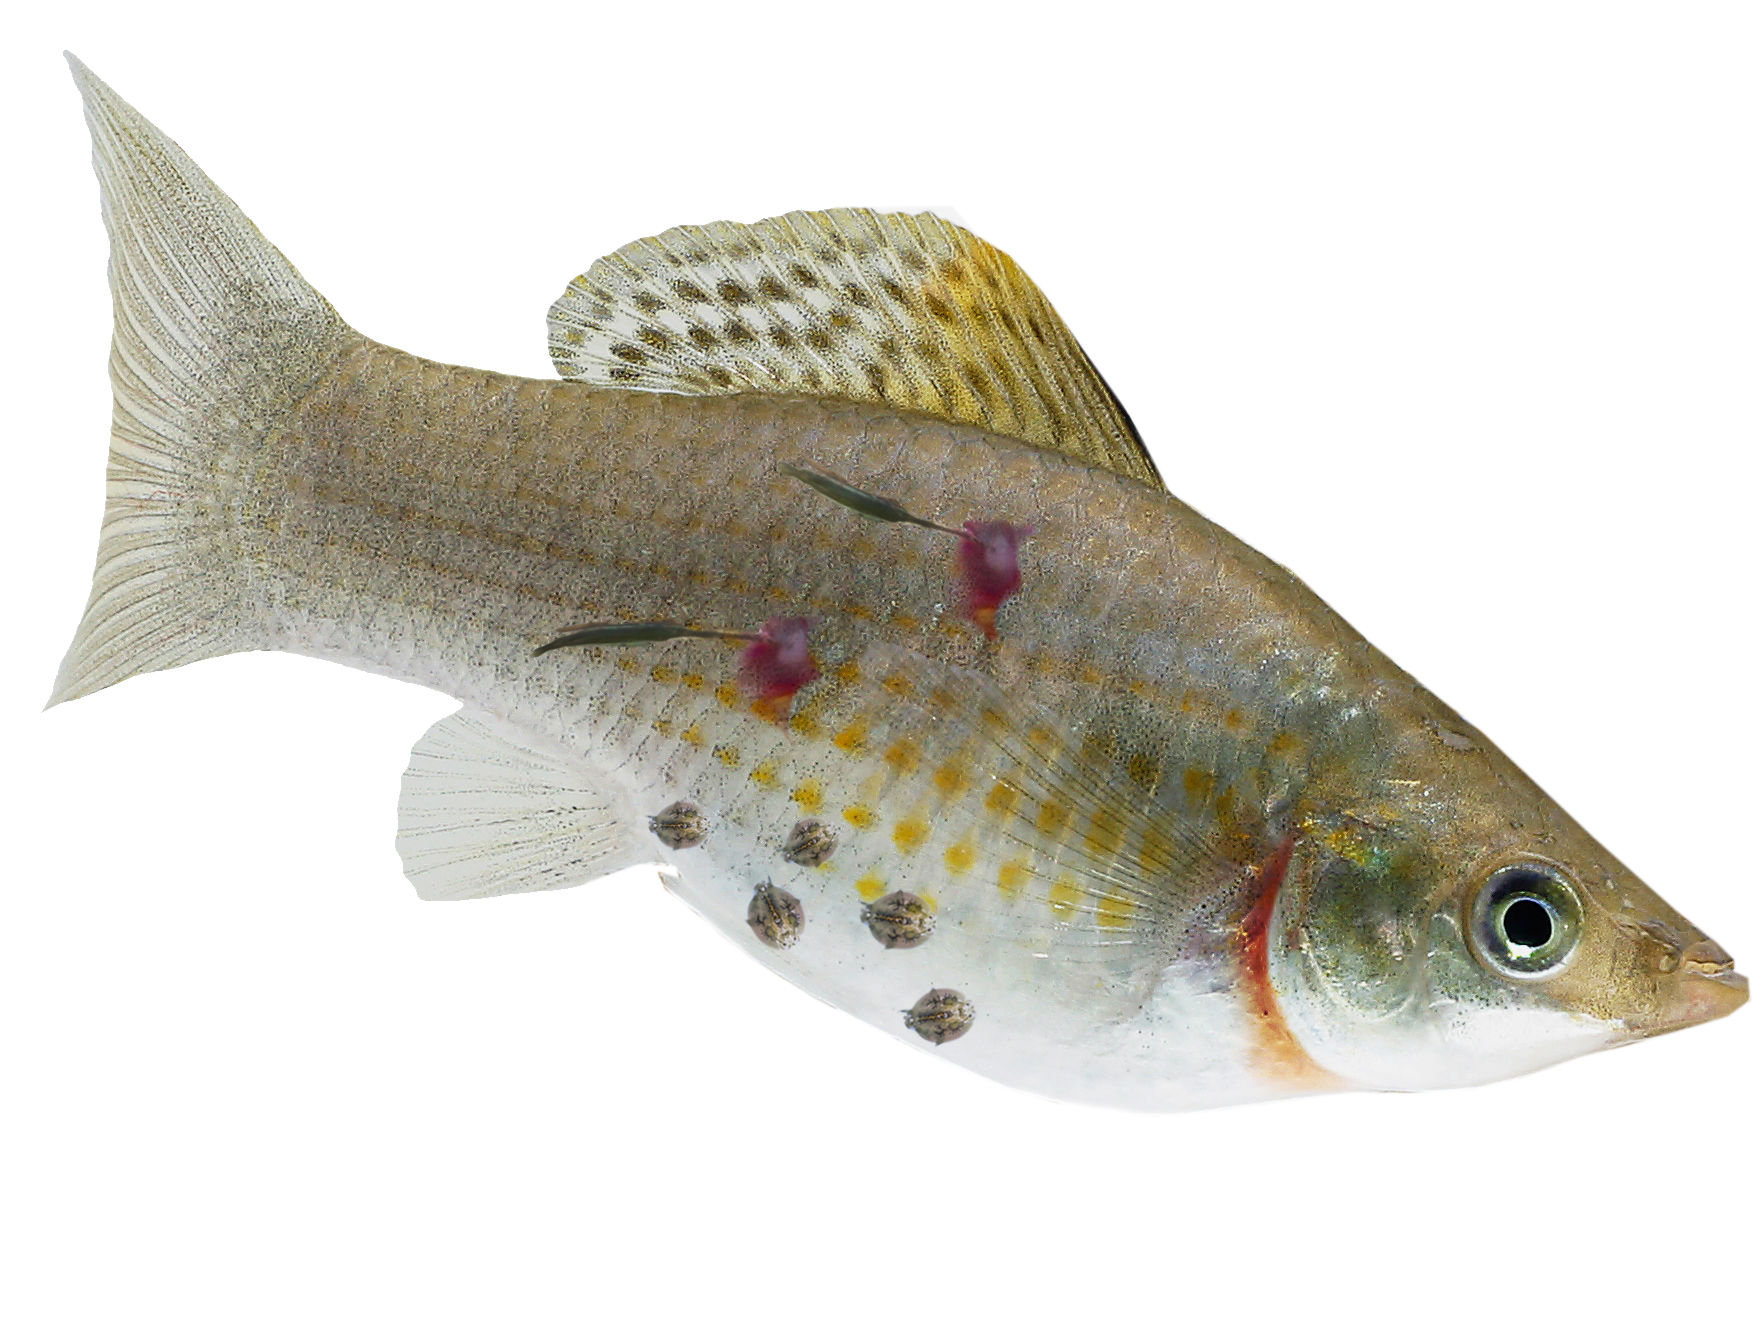 Silver tropical aquarium fish with reddened gills, round lice and small hanging worms attached to body.